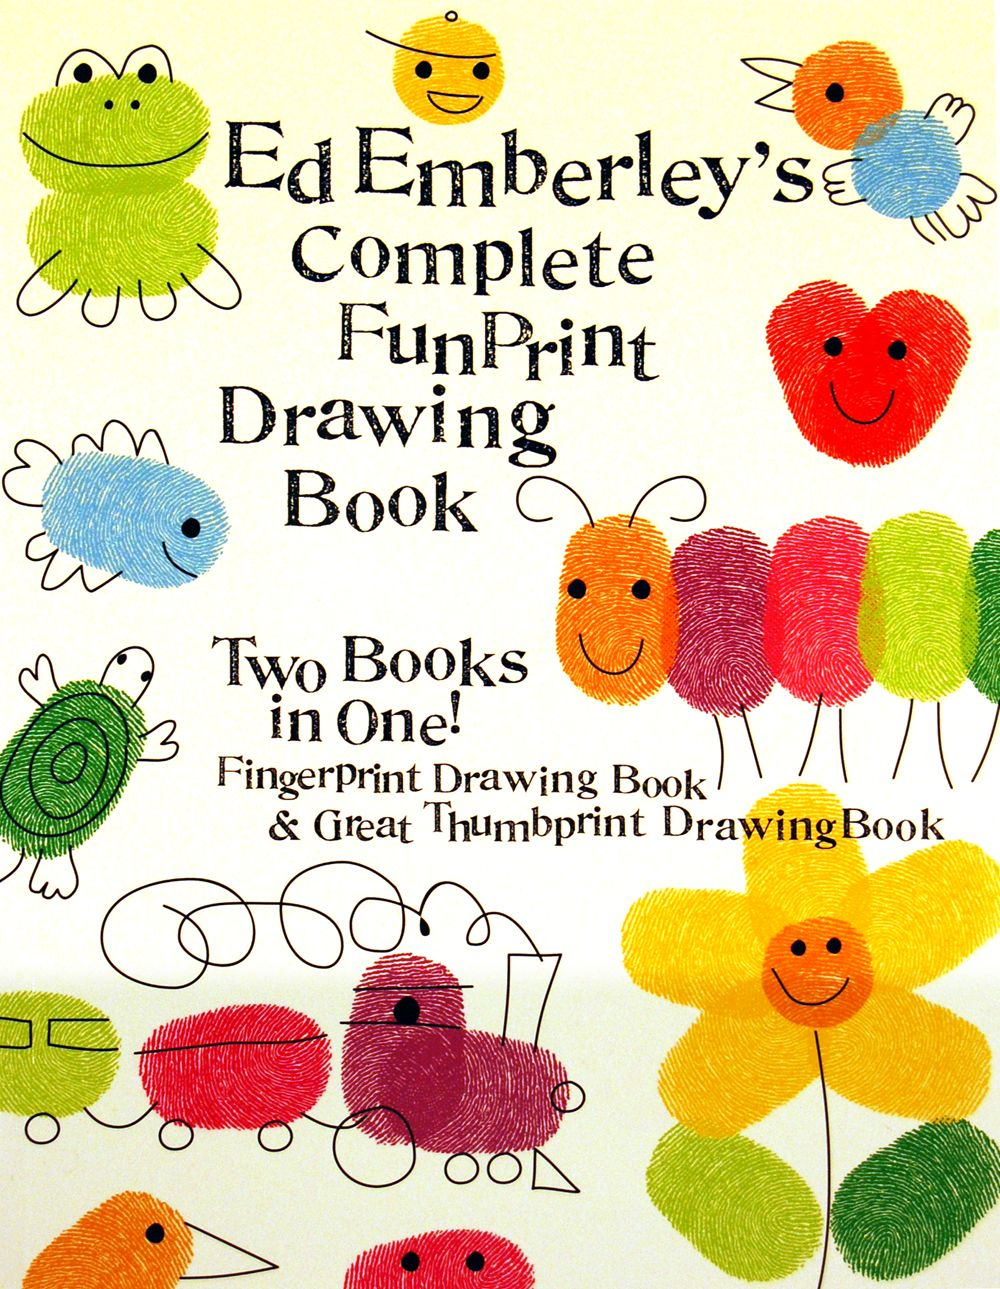 Such a quality, creative book.  Making cool stuff out of fingerprints, fun to do together with the kids.